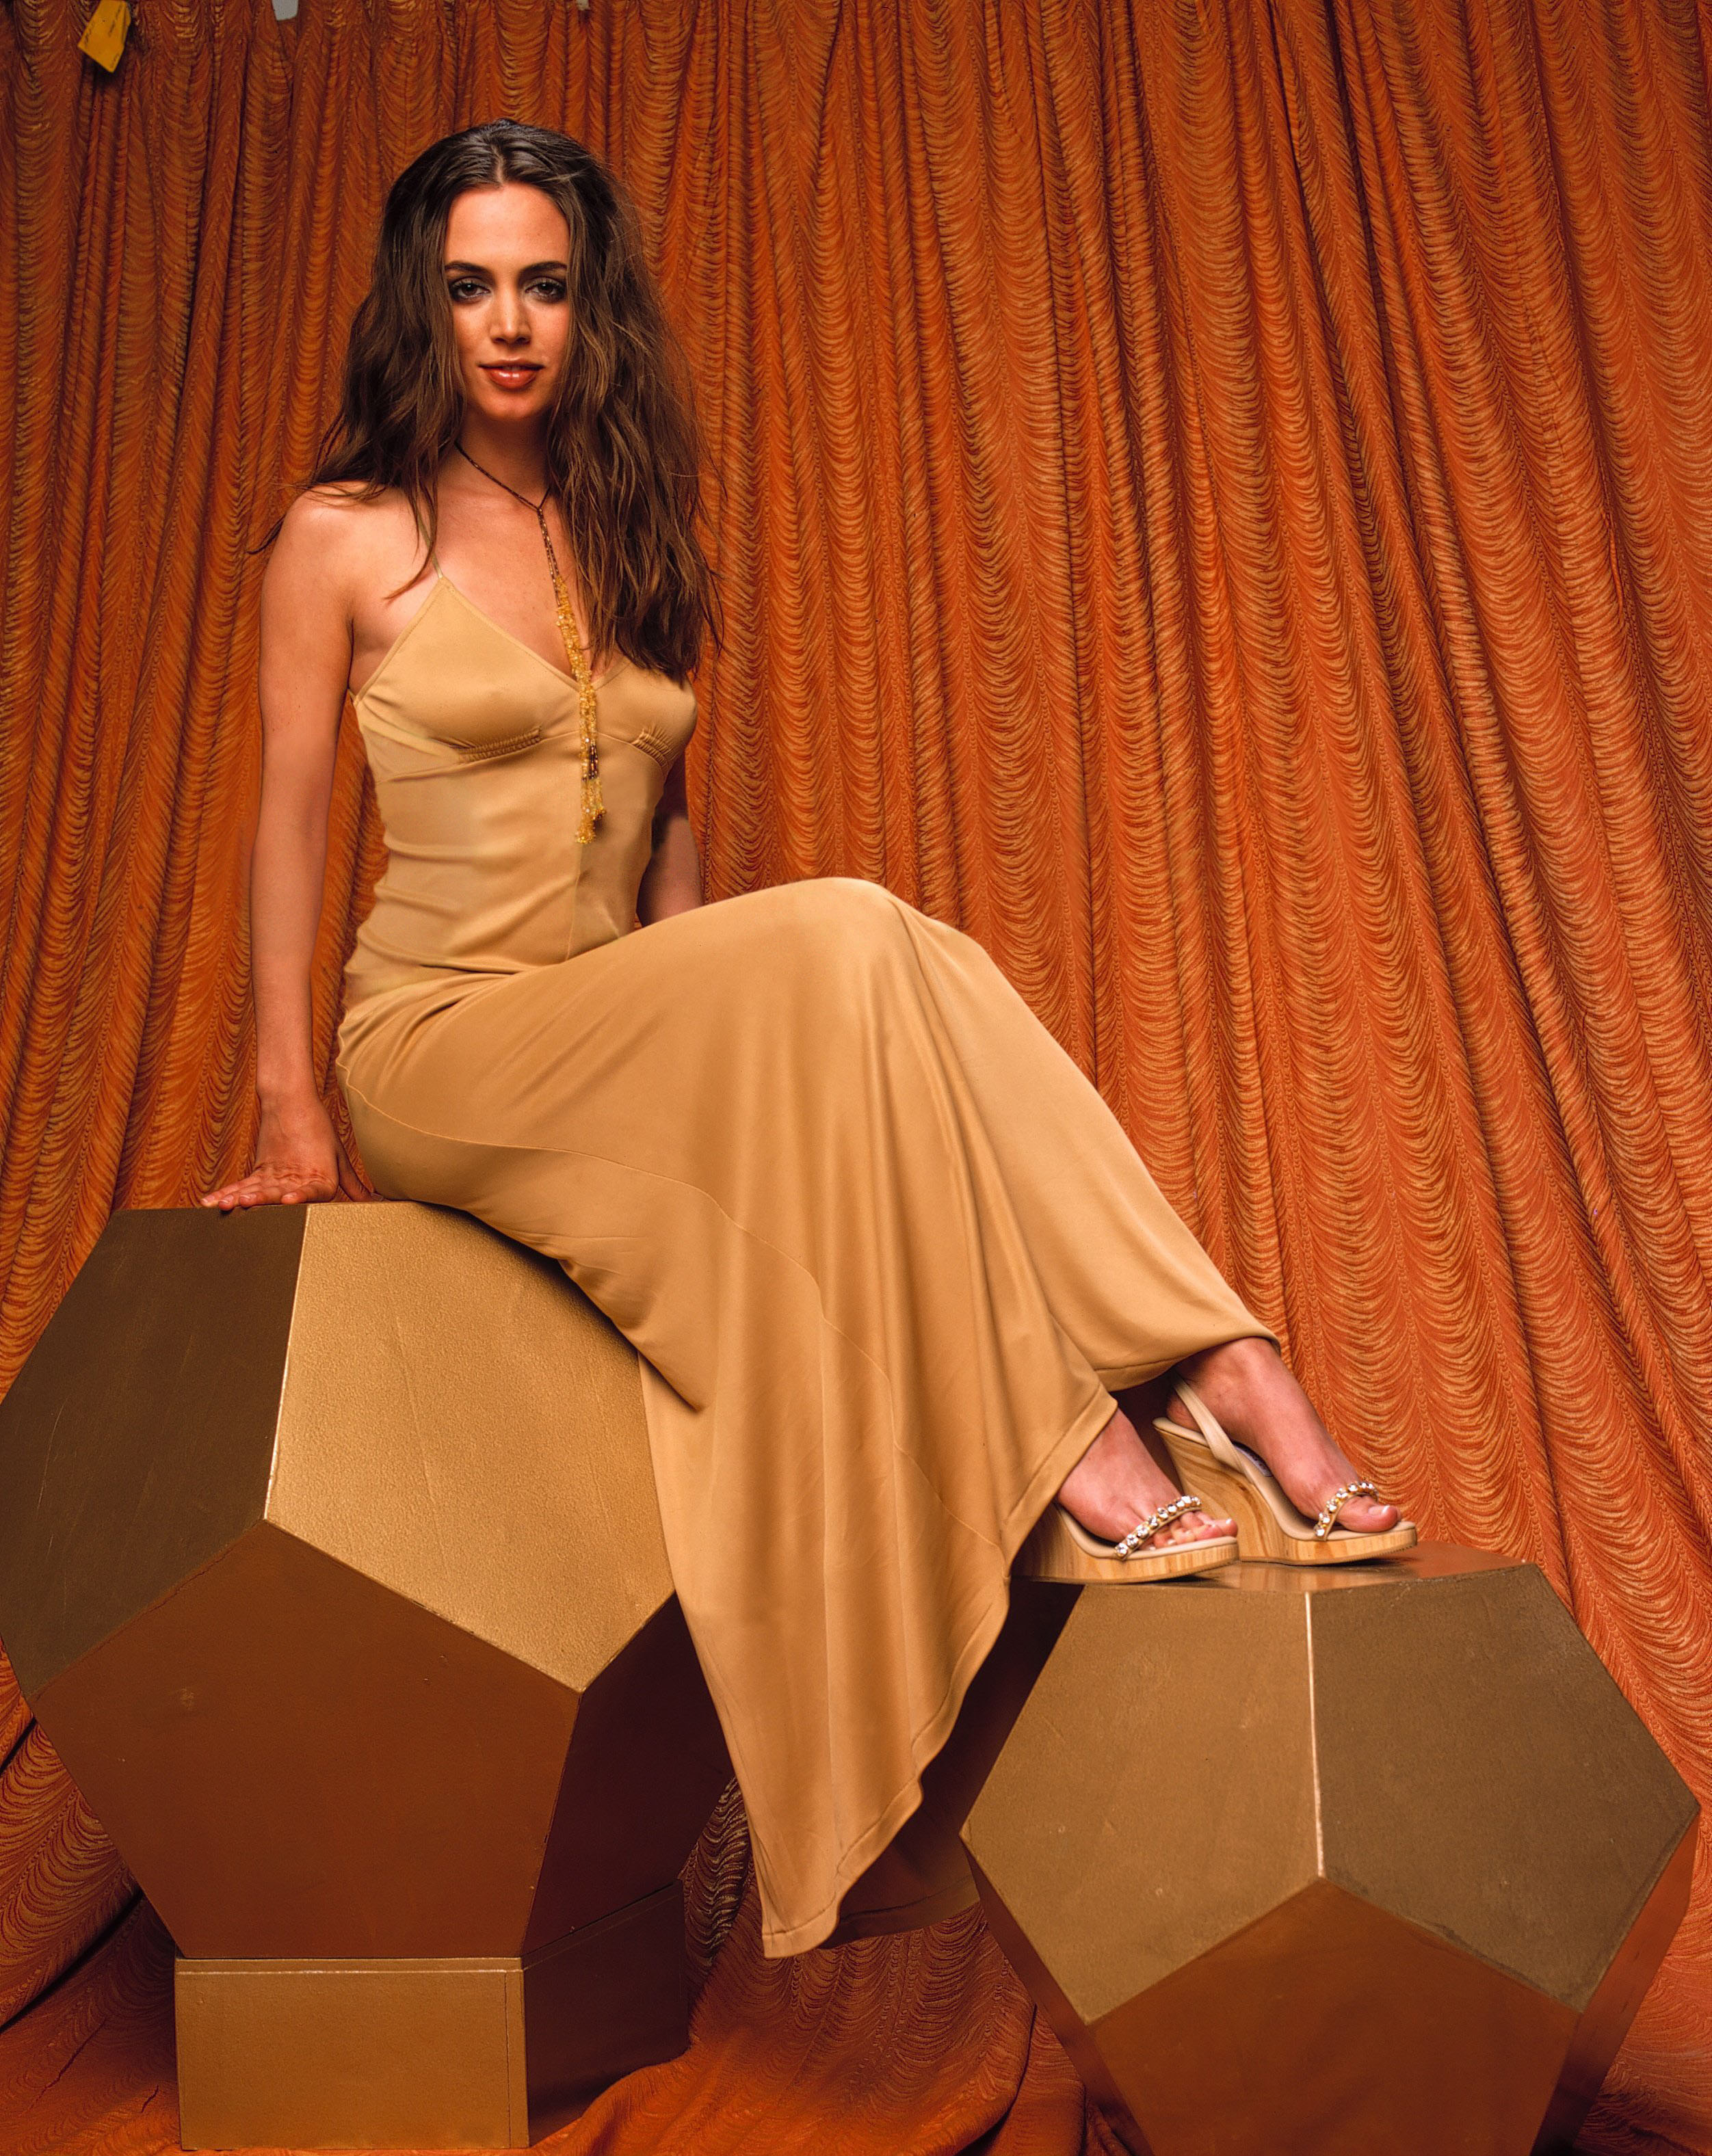 Eliza dushku hq photoshoot for mean magazine july 2001 new picture